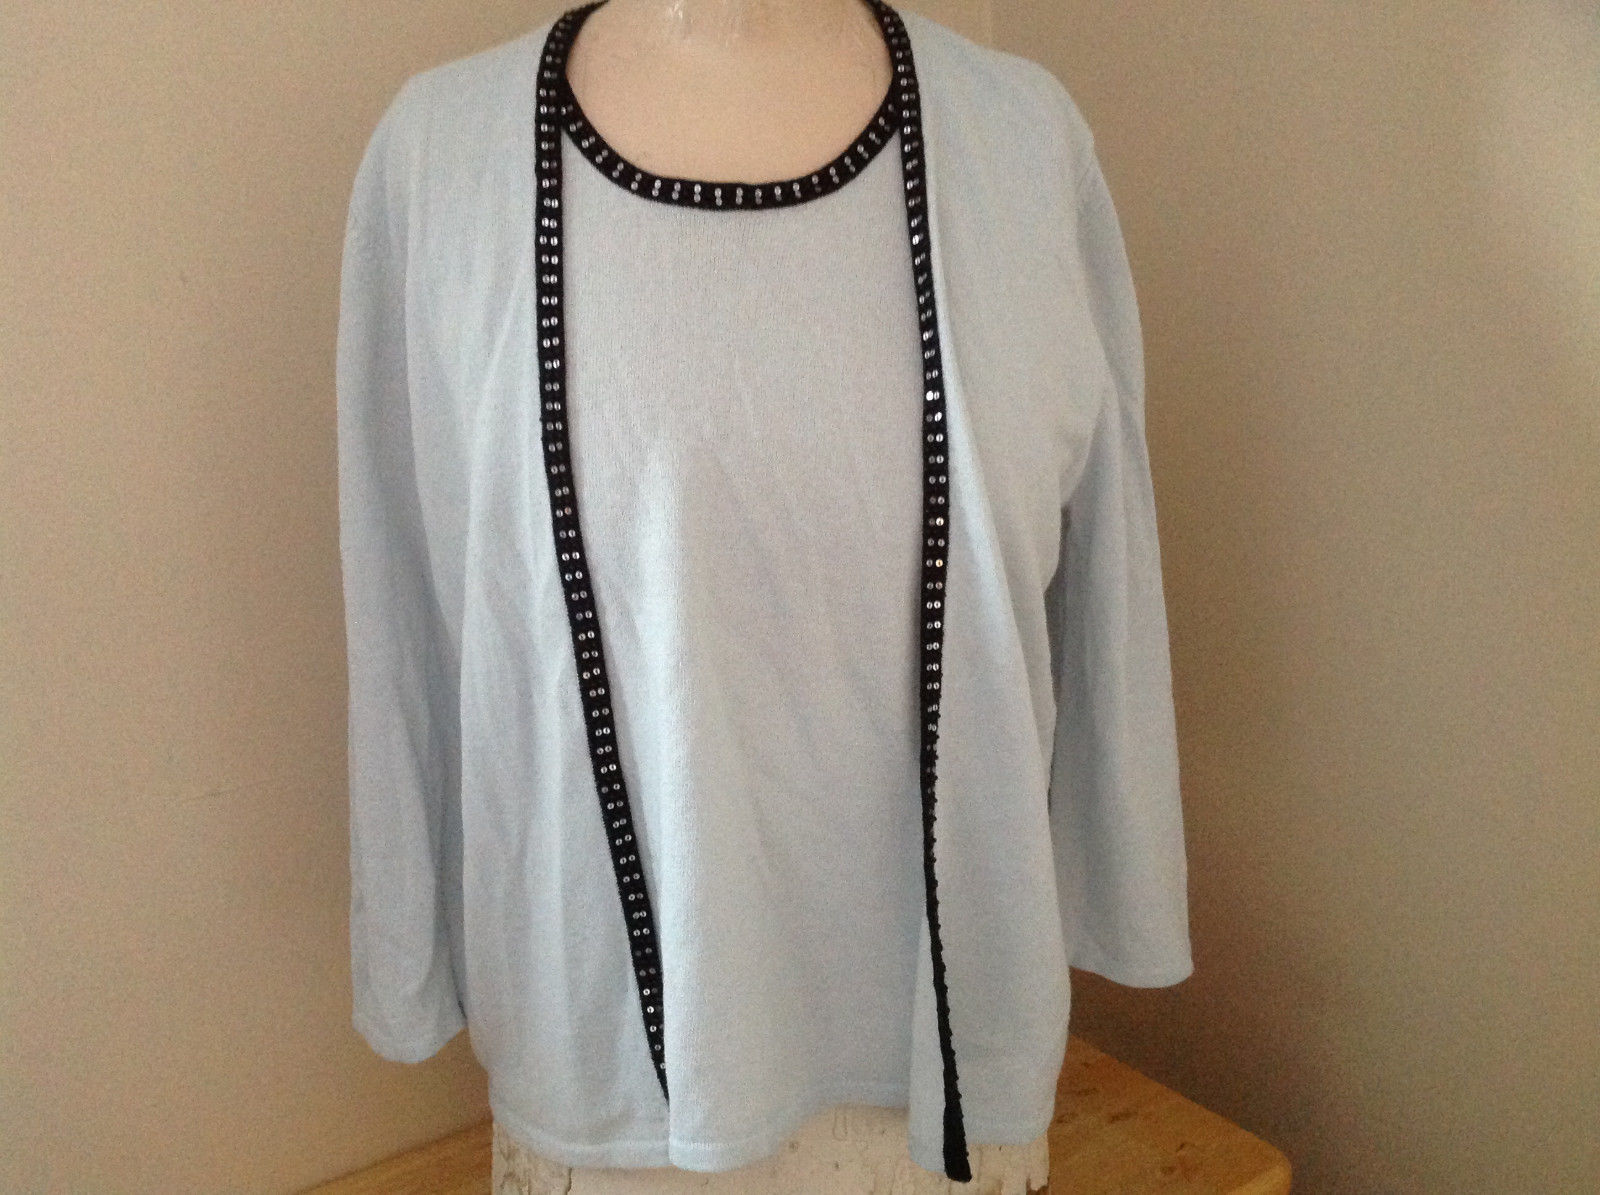 Sag Harbor Baby Blue Black Beaded Trimmed Sweater with Attached Shirt Size XL